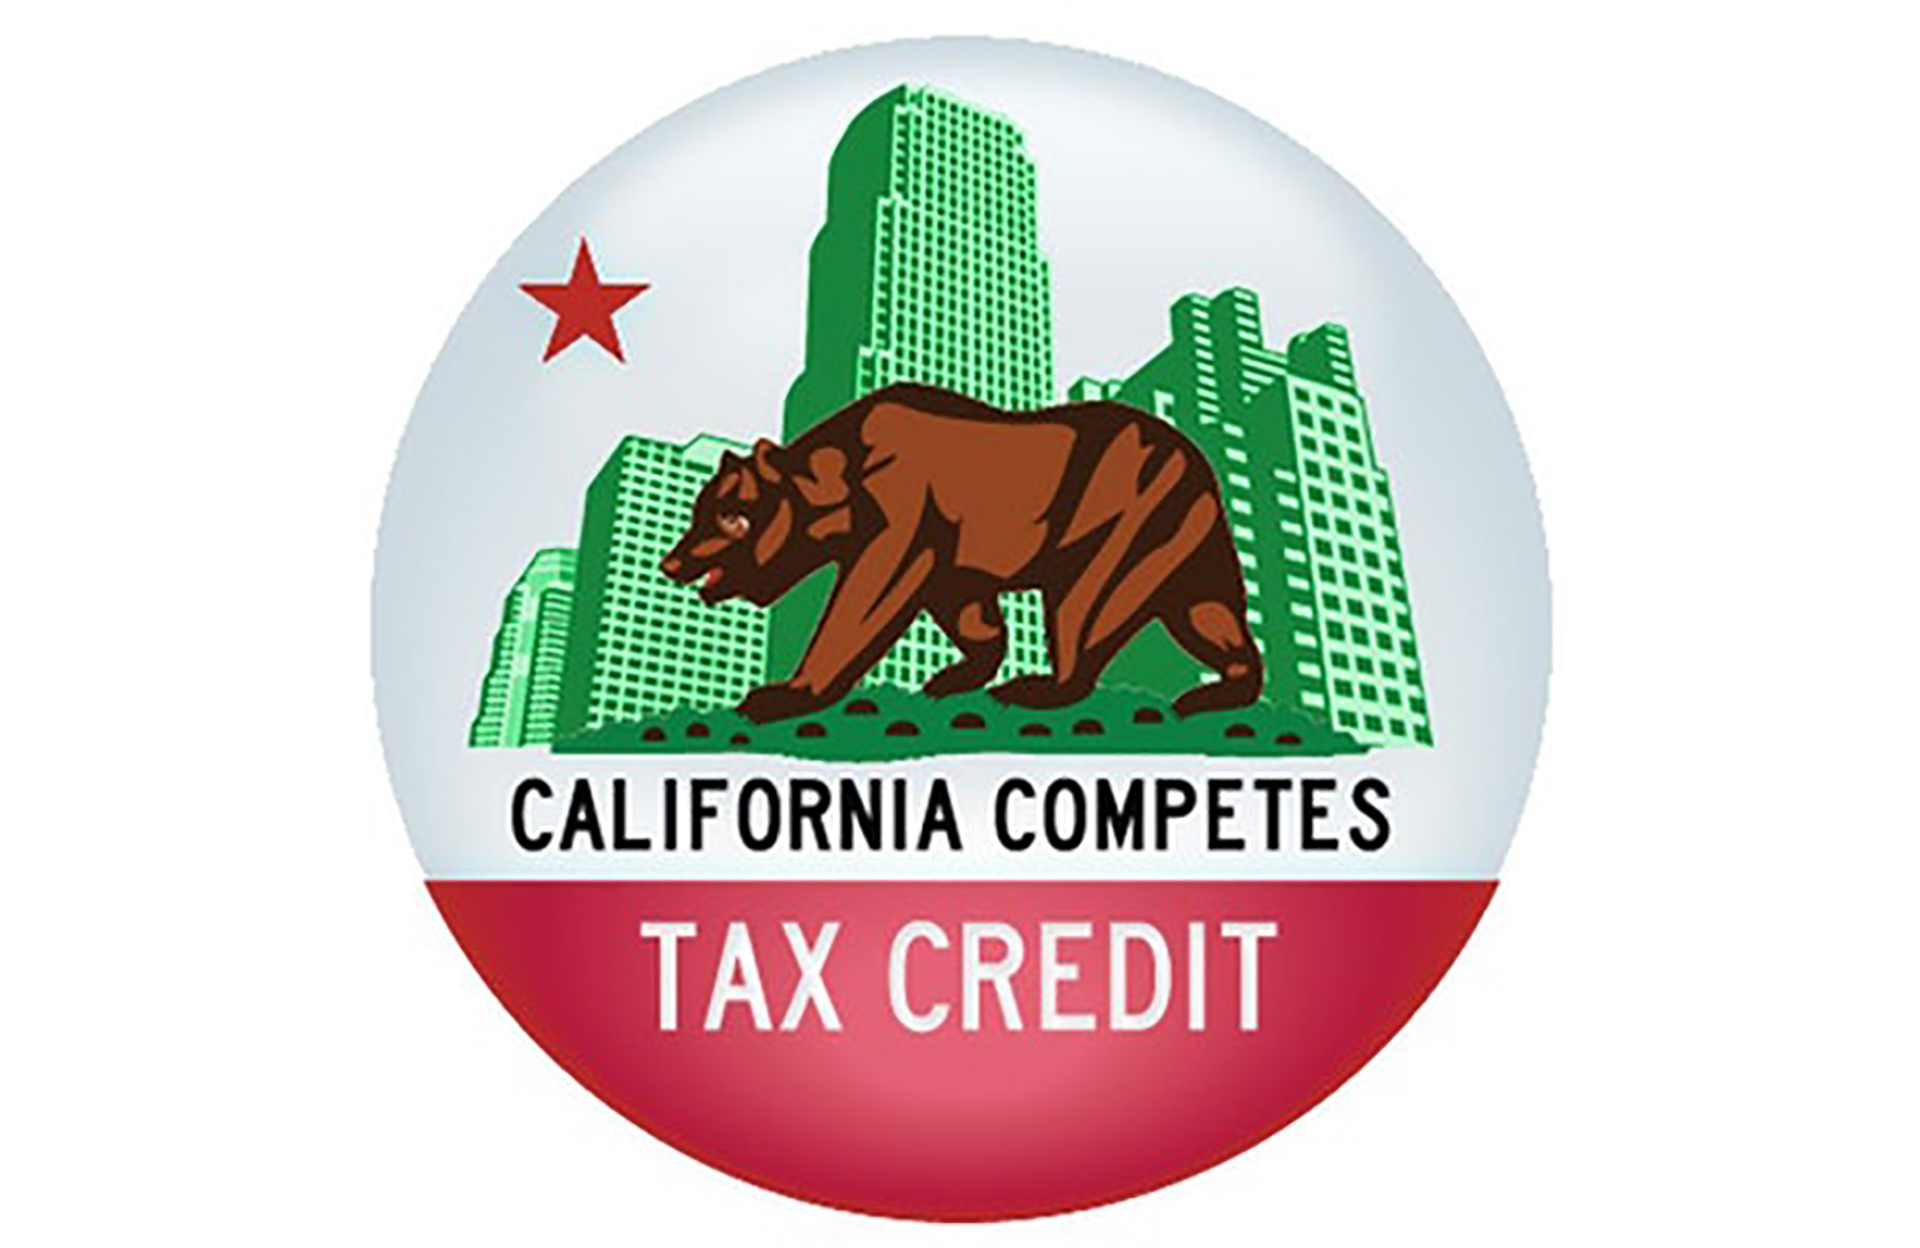 CalCompetesTaxCredit